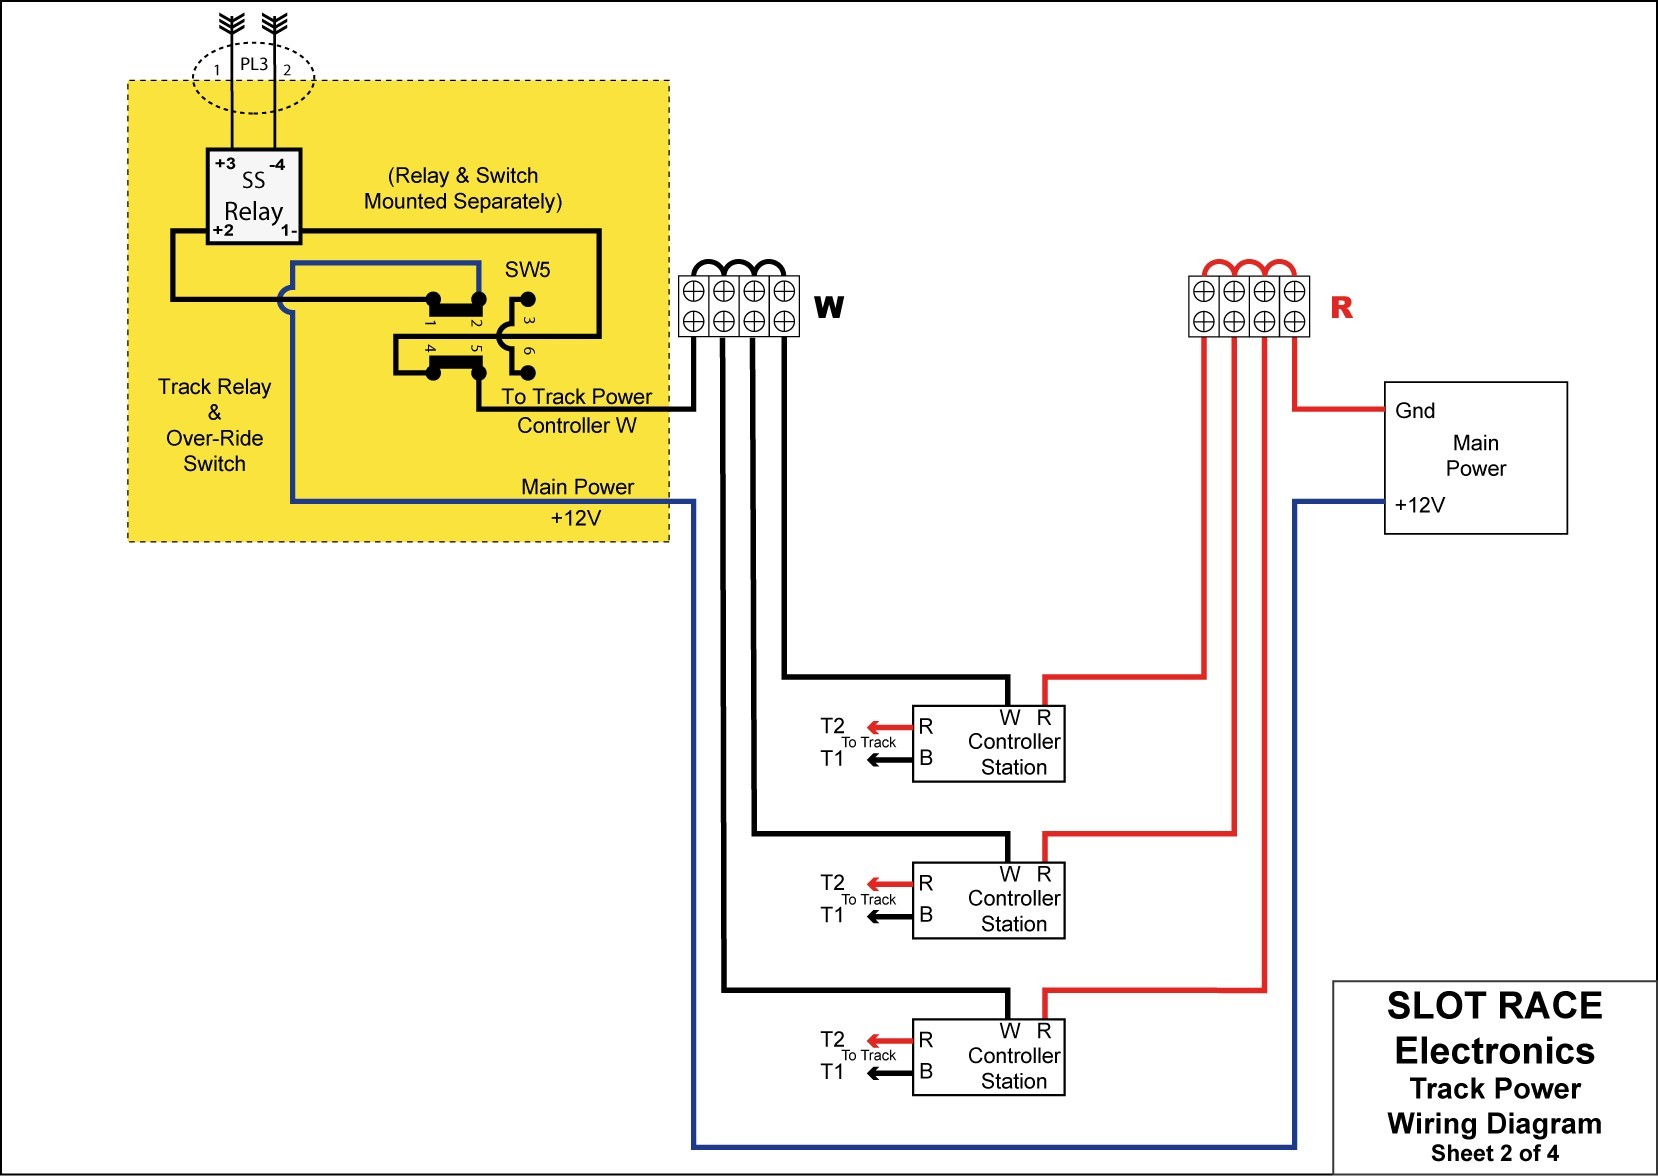 photocell wiring diagram symbol touch wiring diagrams photocell schematic symbol induction loop wiring diagram photocell wiring diagram symbol